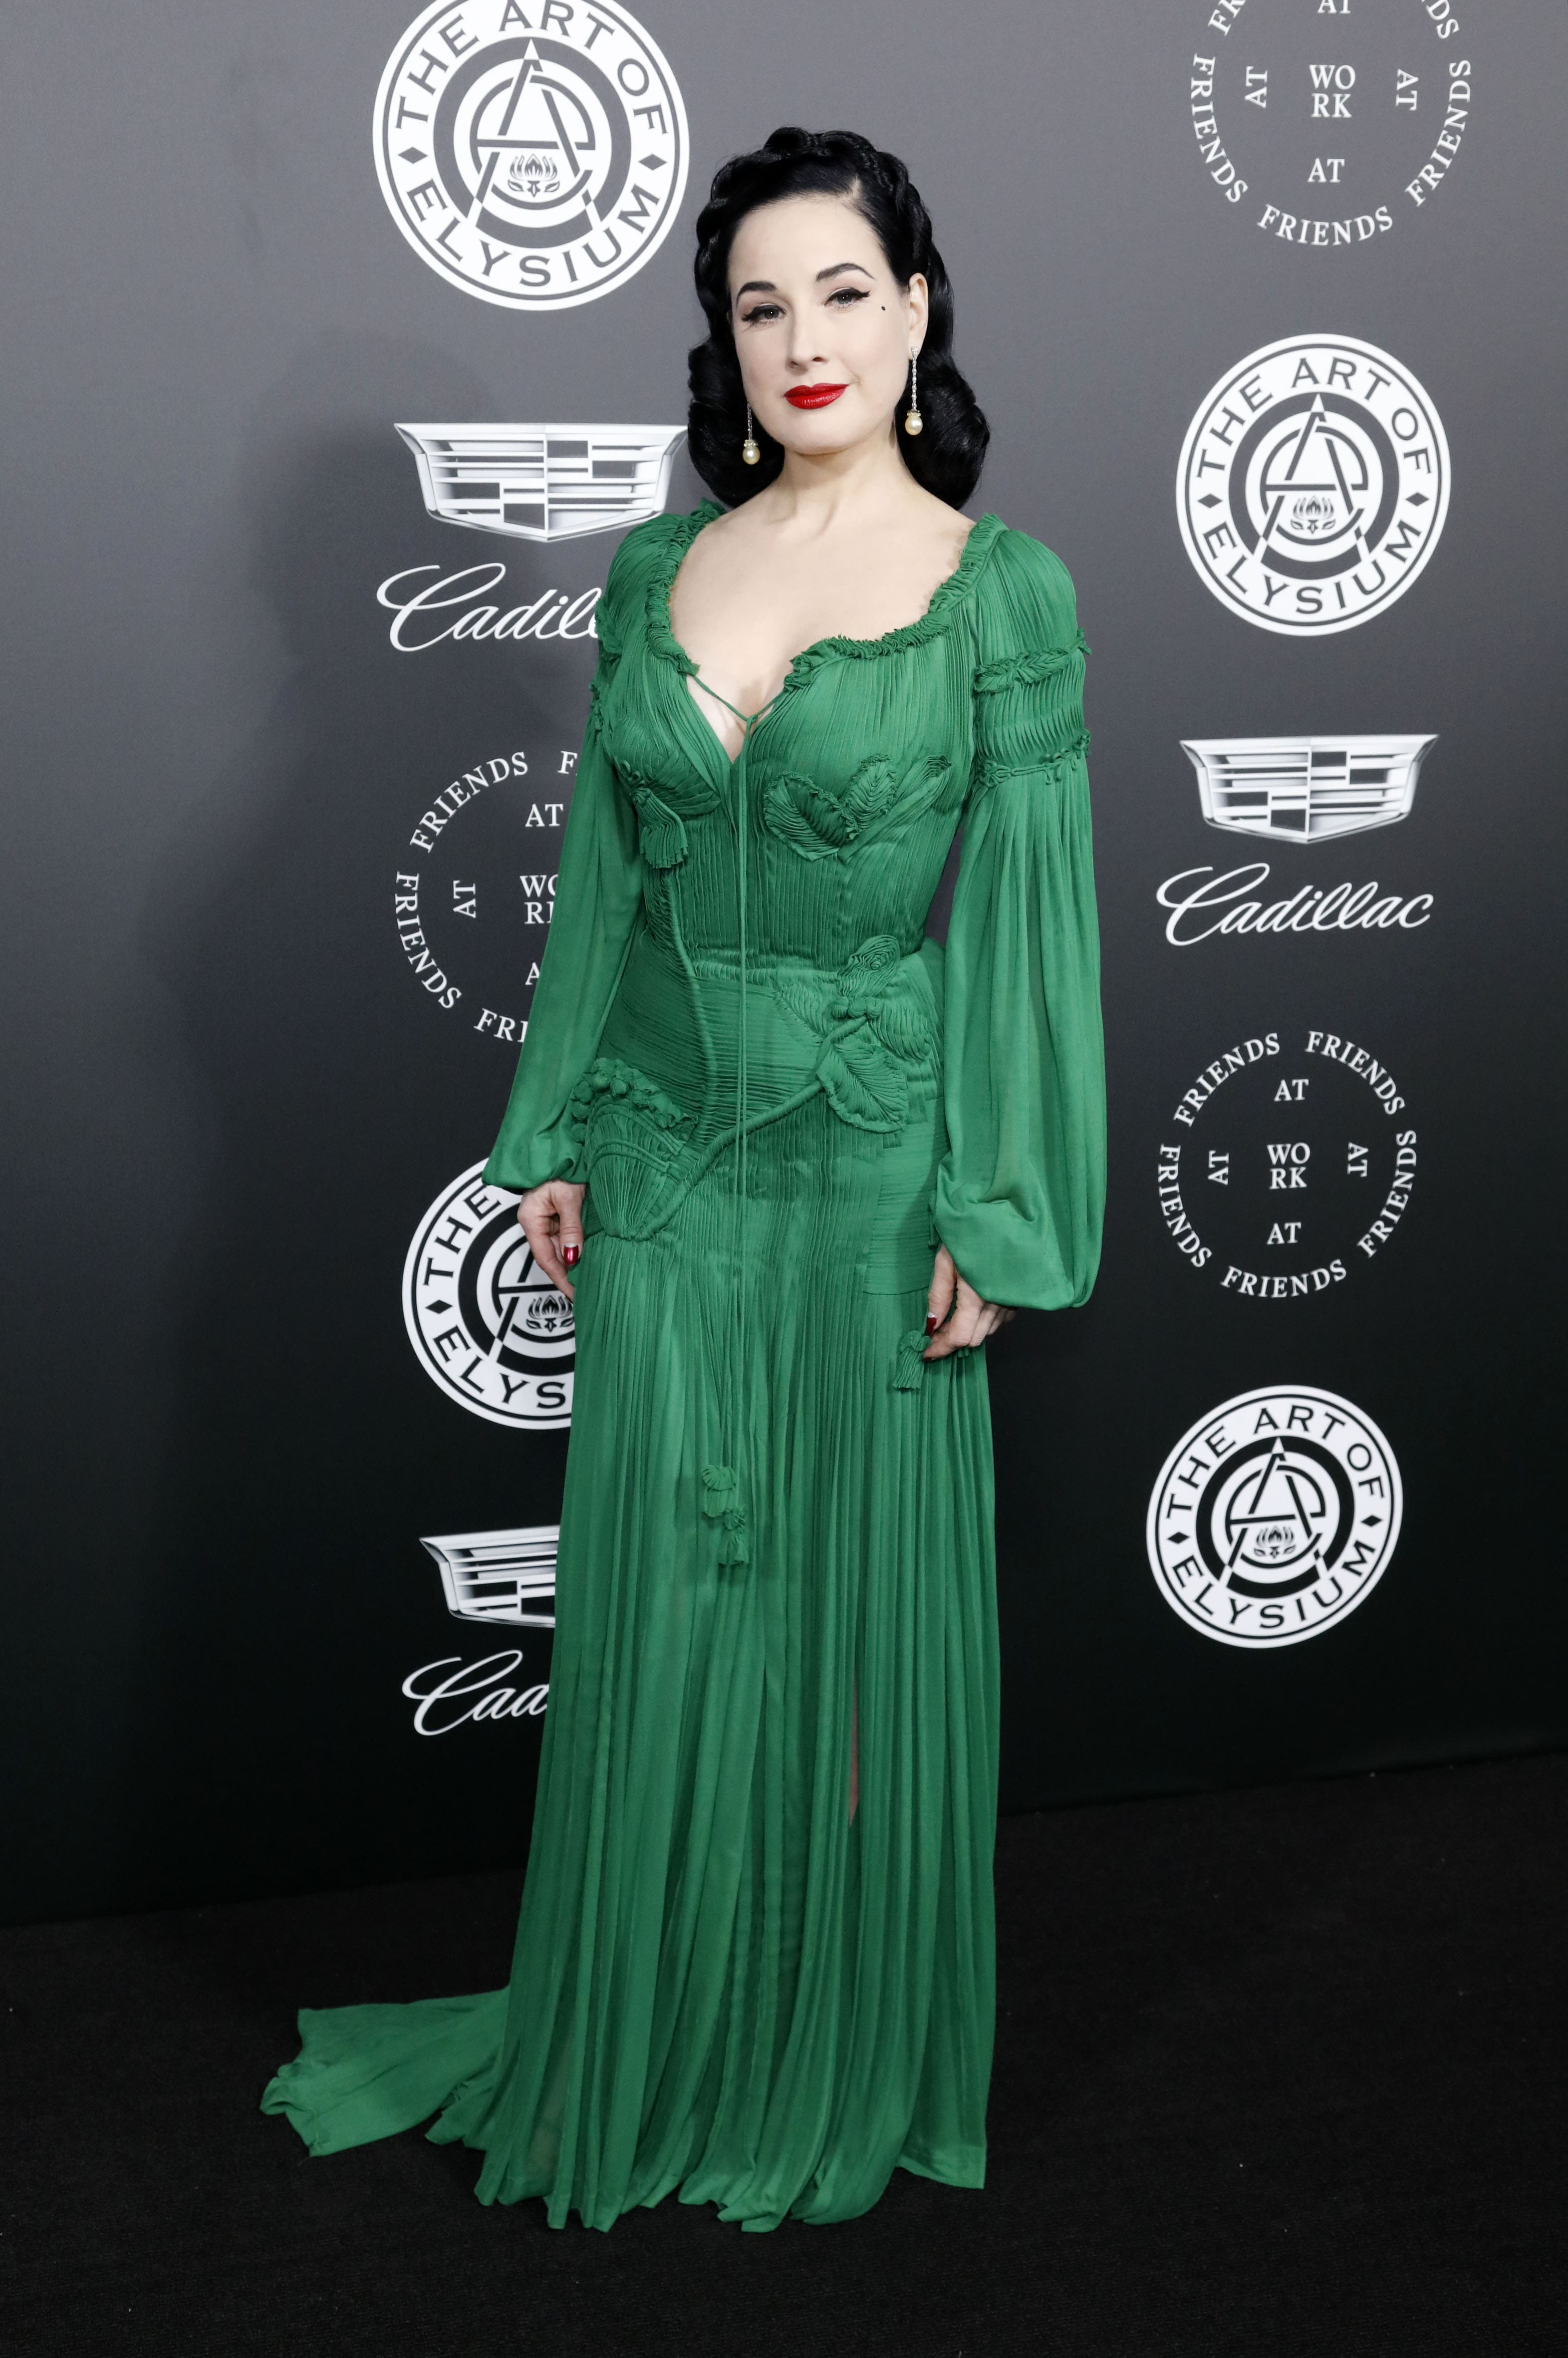 0a634f3d7b4 Dita Von Teese joined the 11th Art of Elysium Heaven Gala wearing a  romantic emerald green